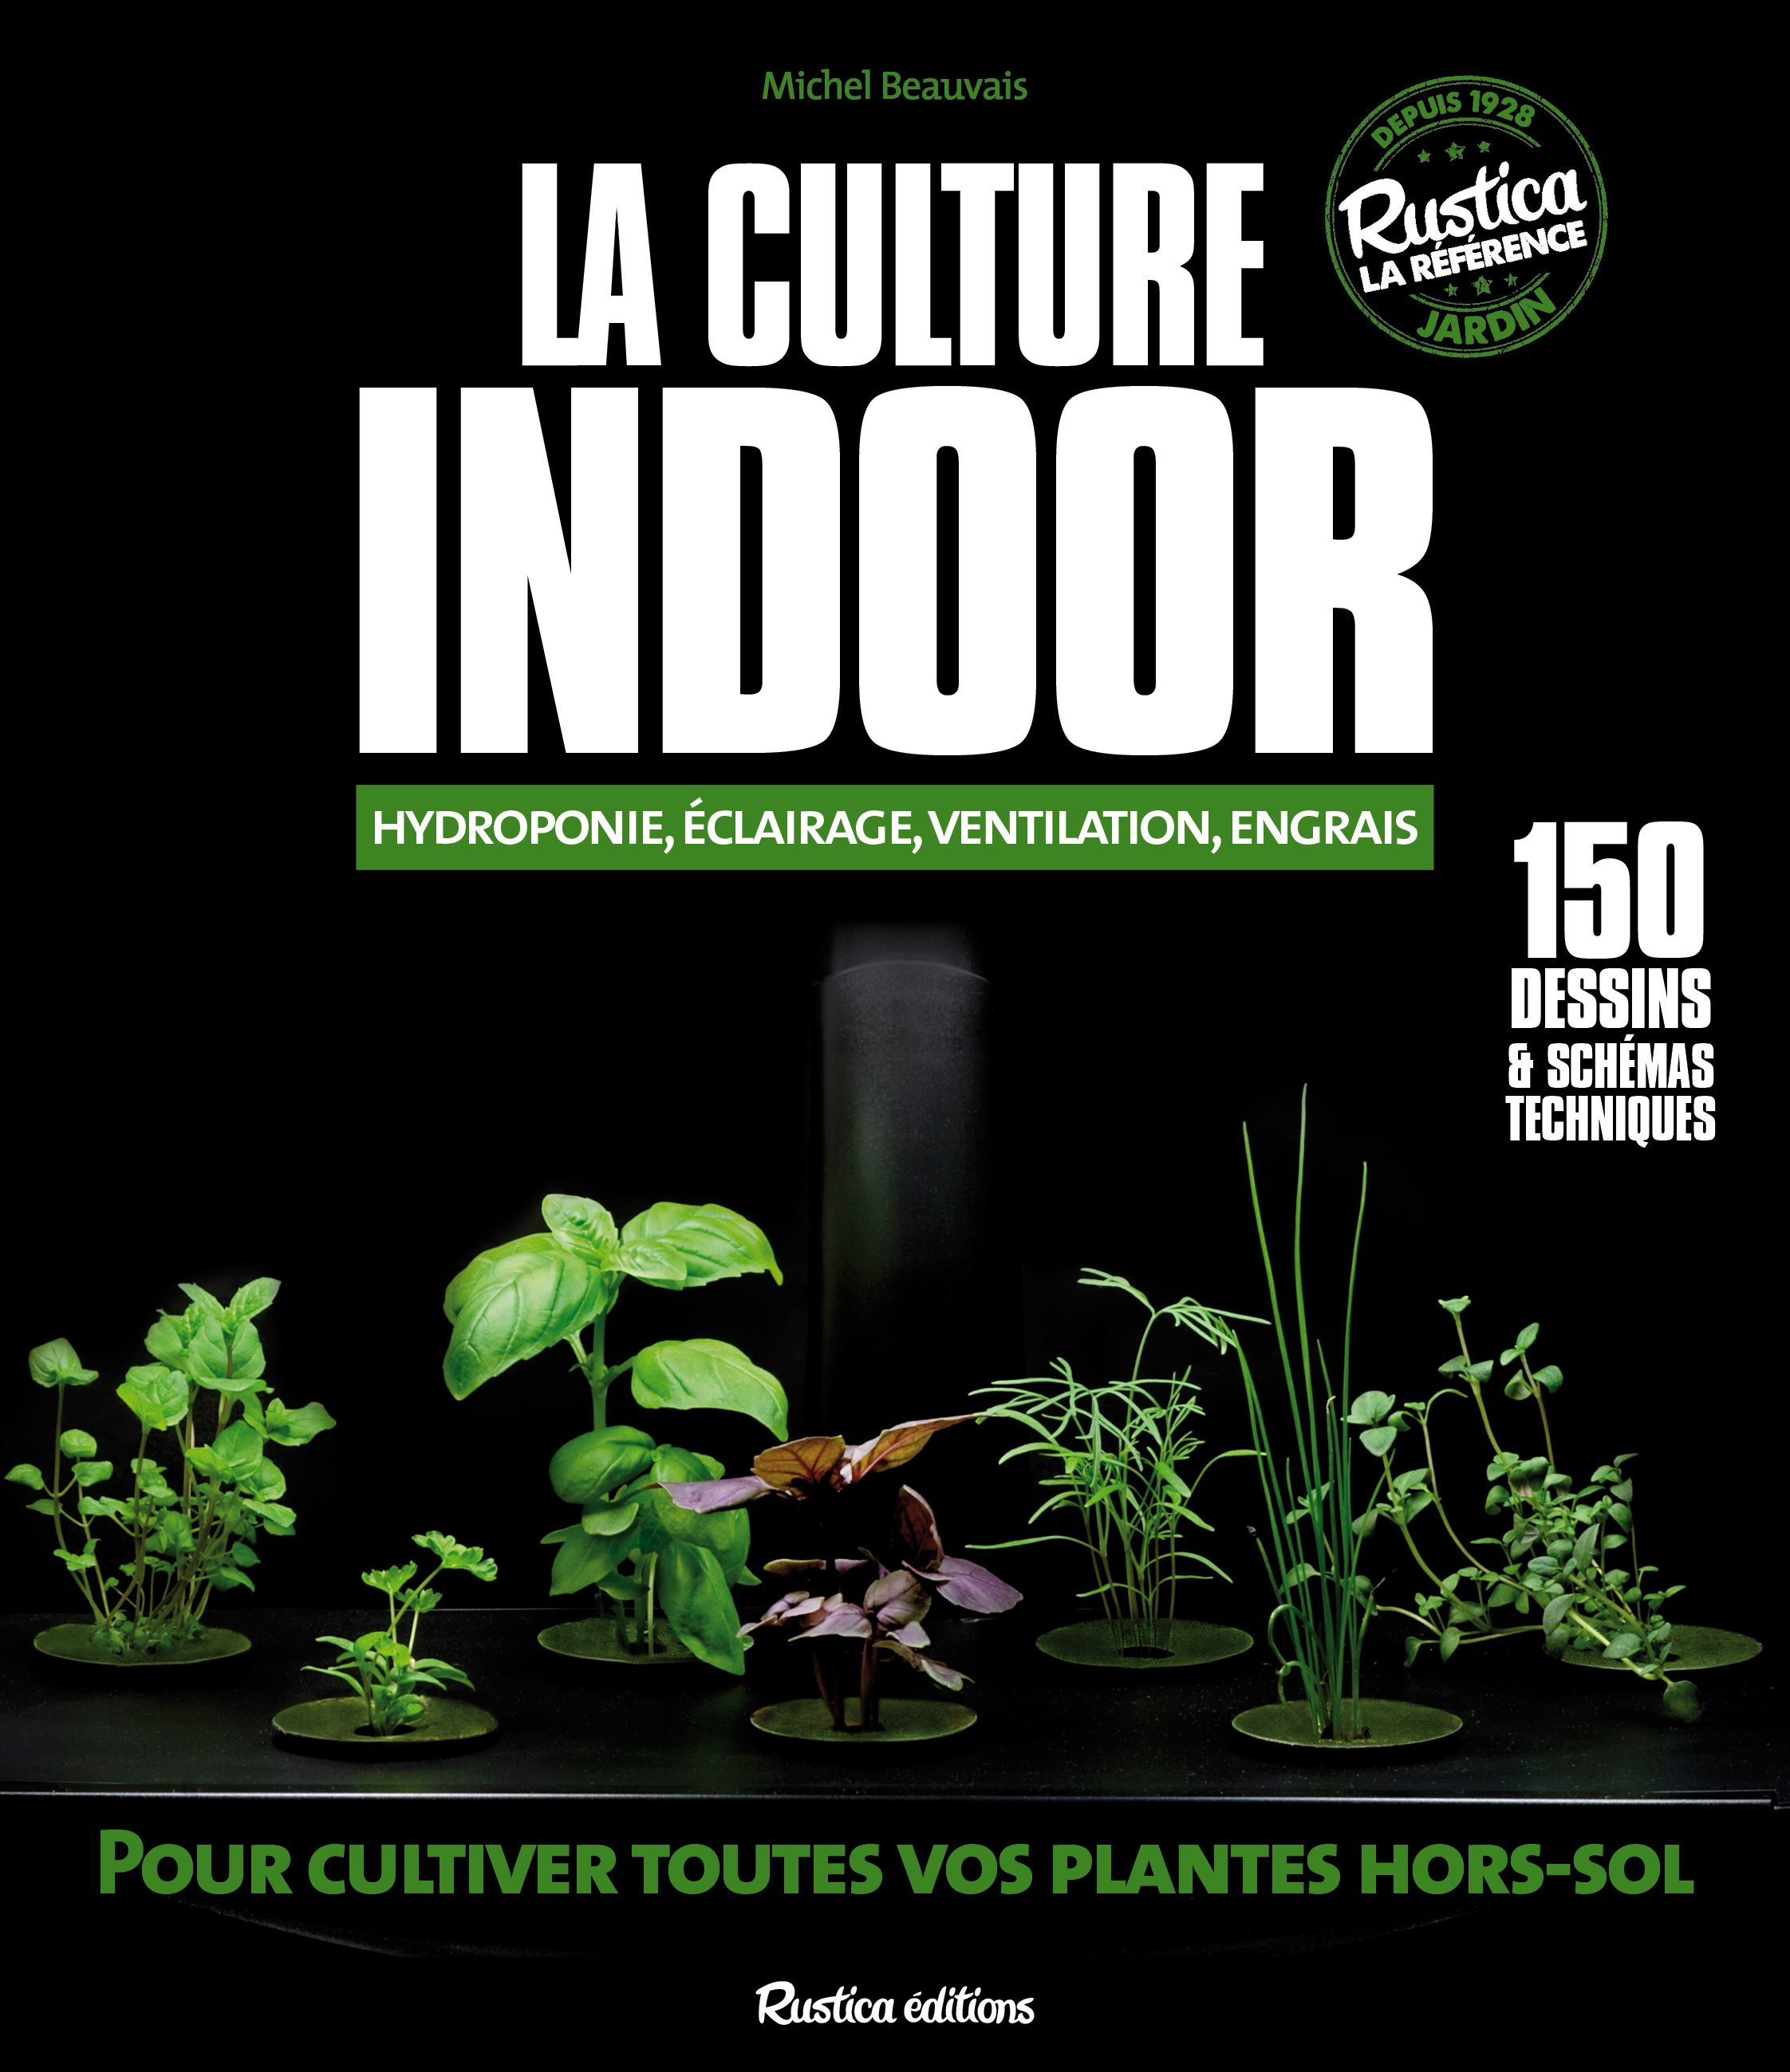 La culture indoor : hydroponie, éclairage, ventilation, engrais ...